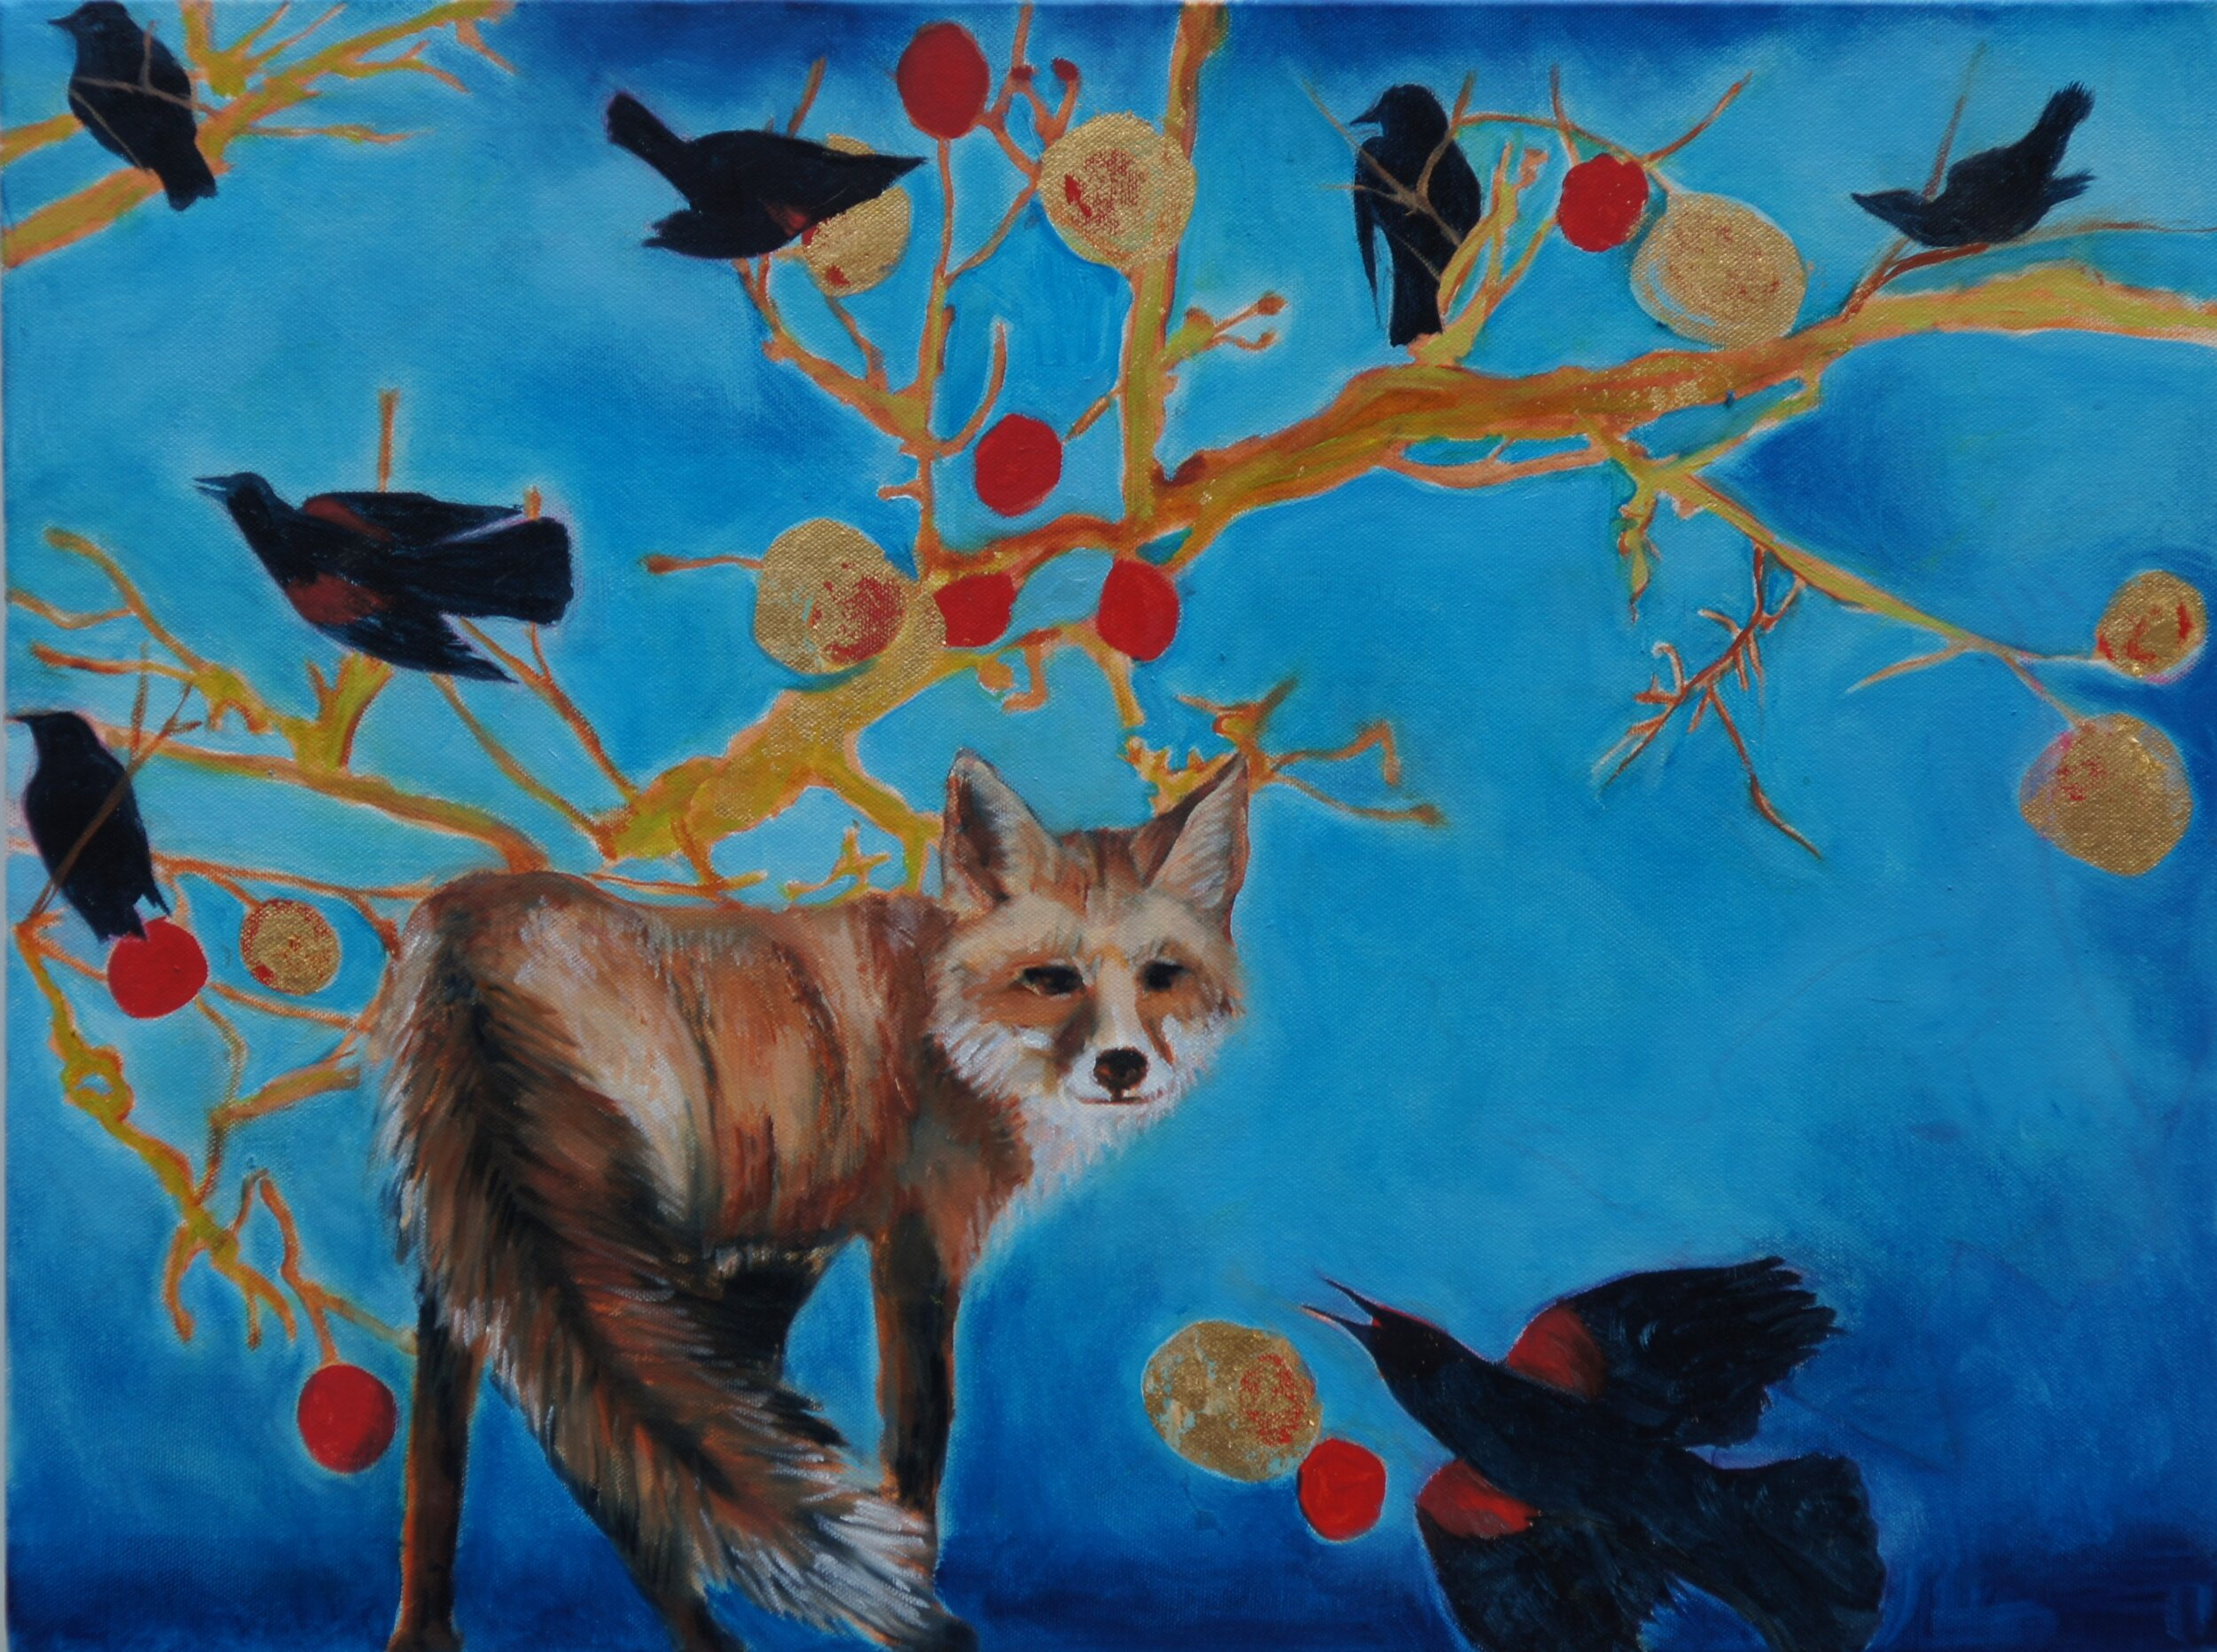 """The Eternal Gaze of the Messenger VI, 2019, Oil and Gold on Canvas, 24""""x18""""  Abstract landscape in Oregon featuring tree branches, fruits, fox, birds. Blue dominating the background."""